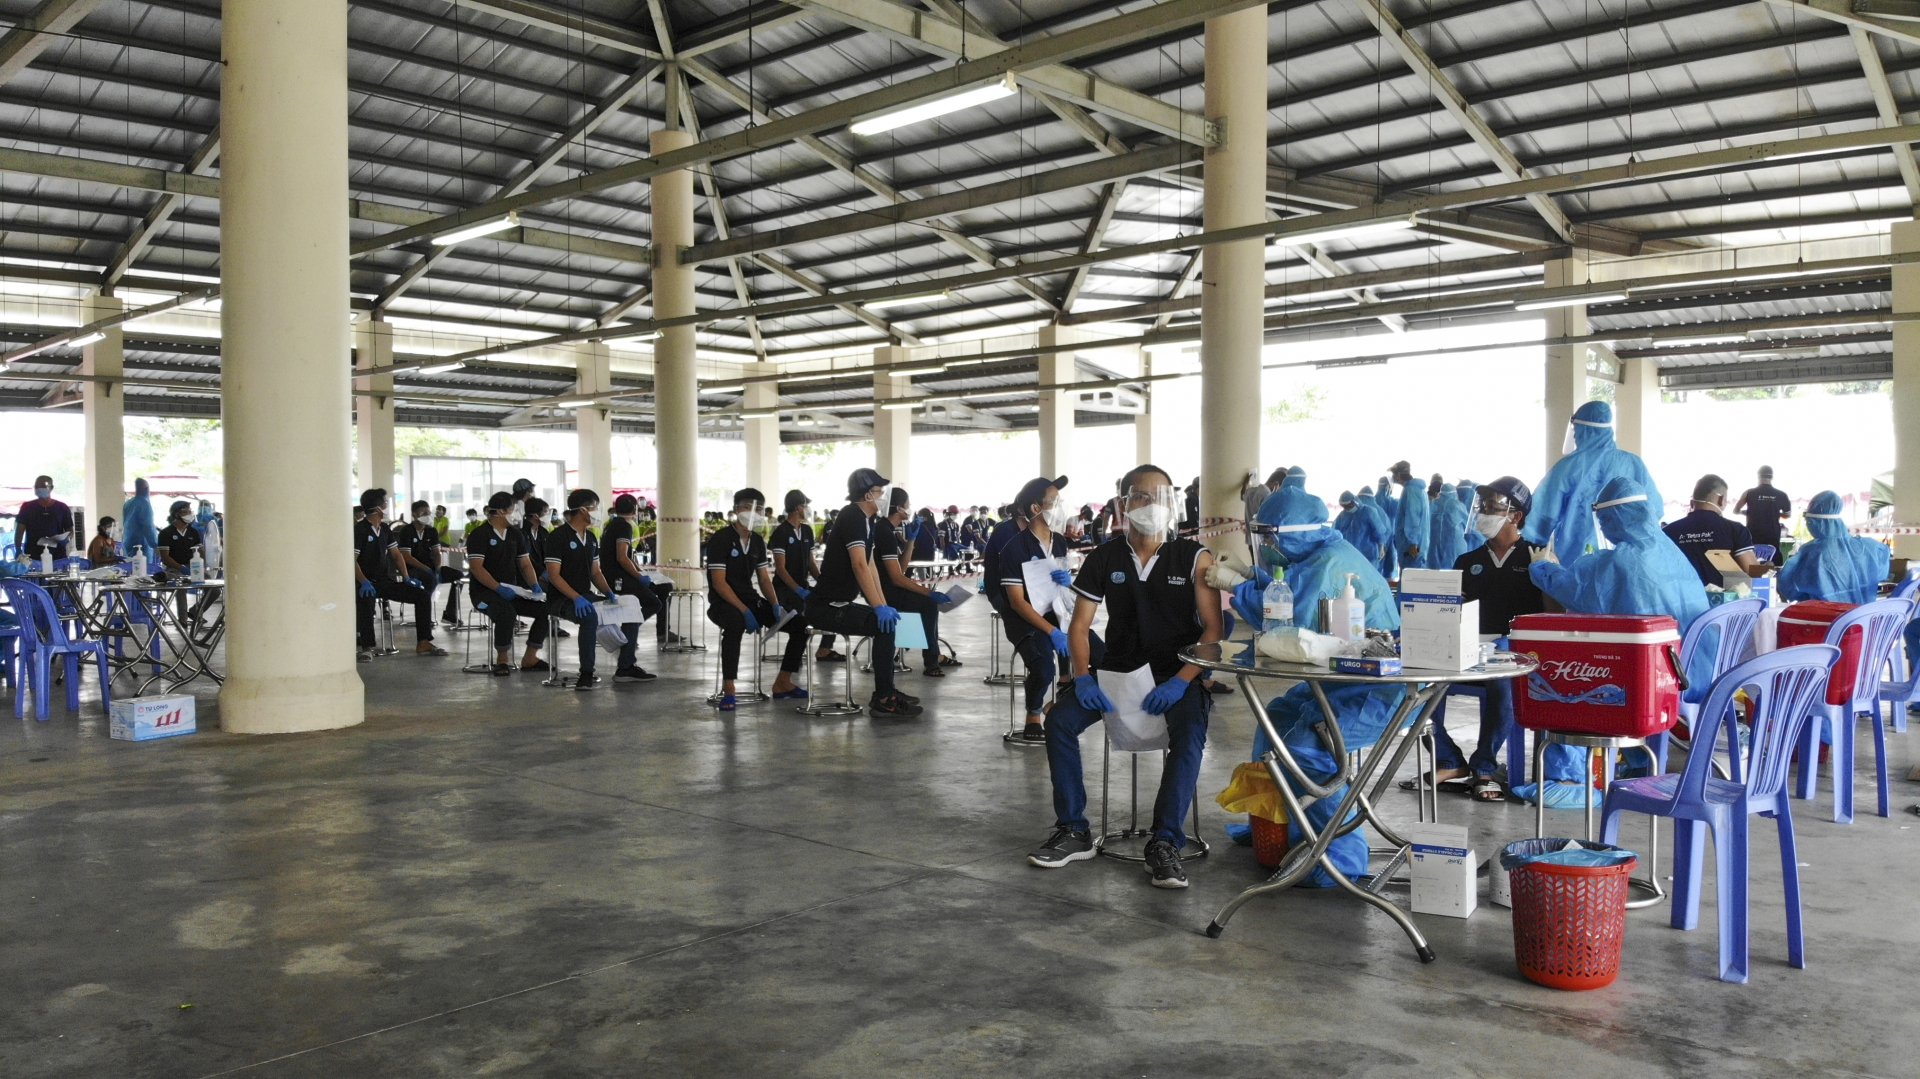 VSIP supports Binh Duong in vaccination of 40,000 workers